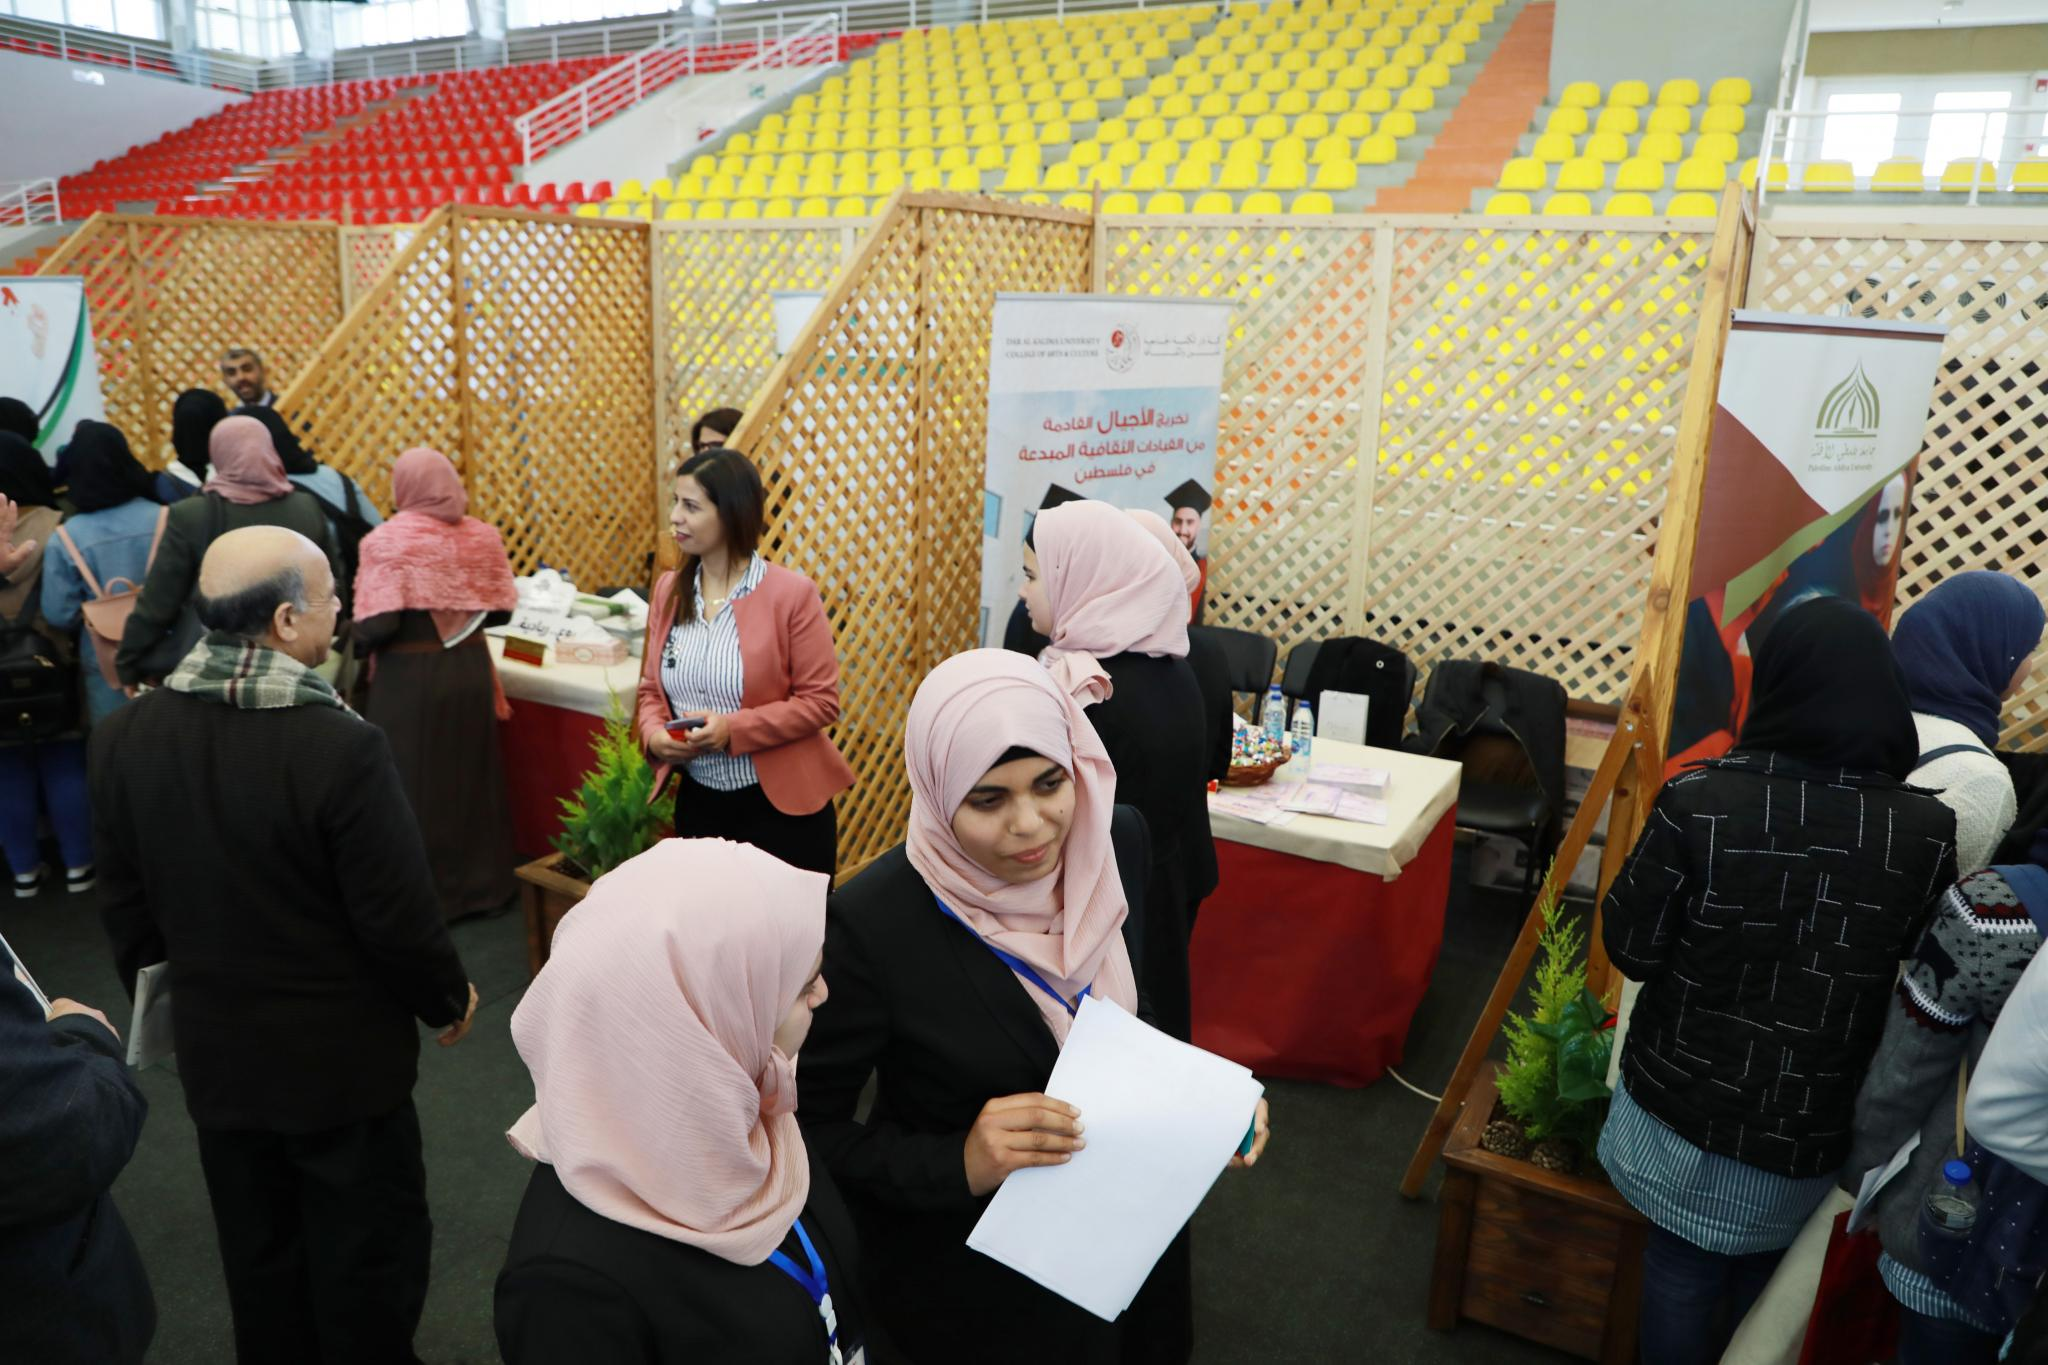 The University Hosts Palestinian Universities on the Guidance Day